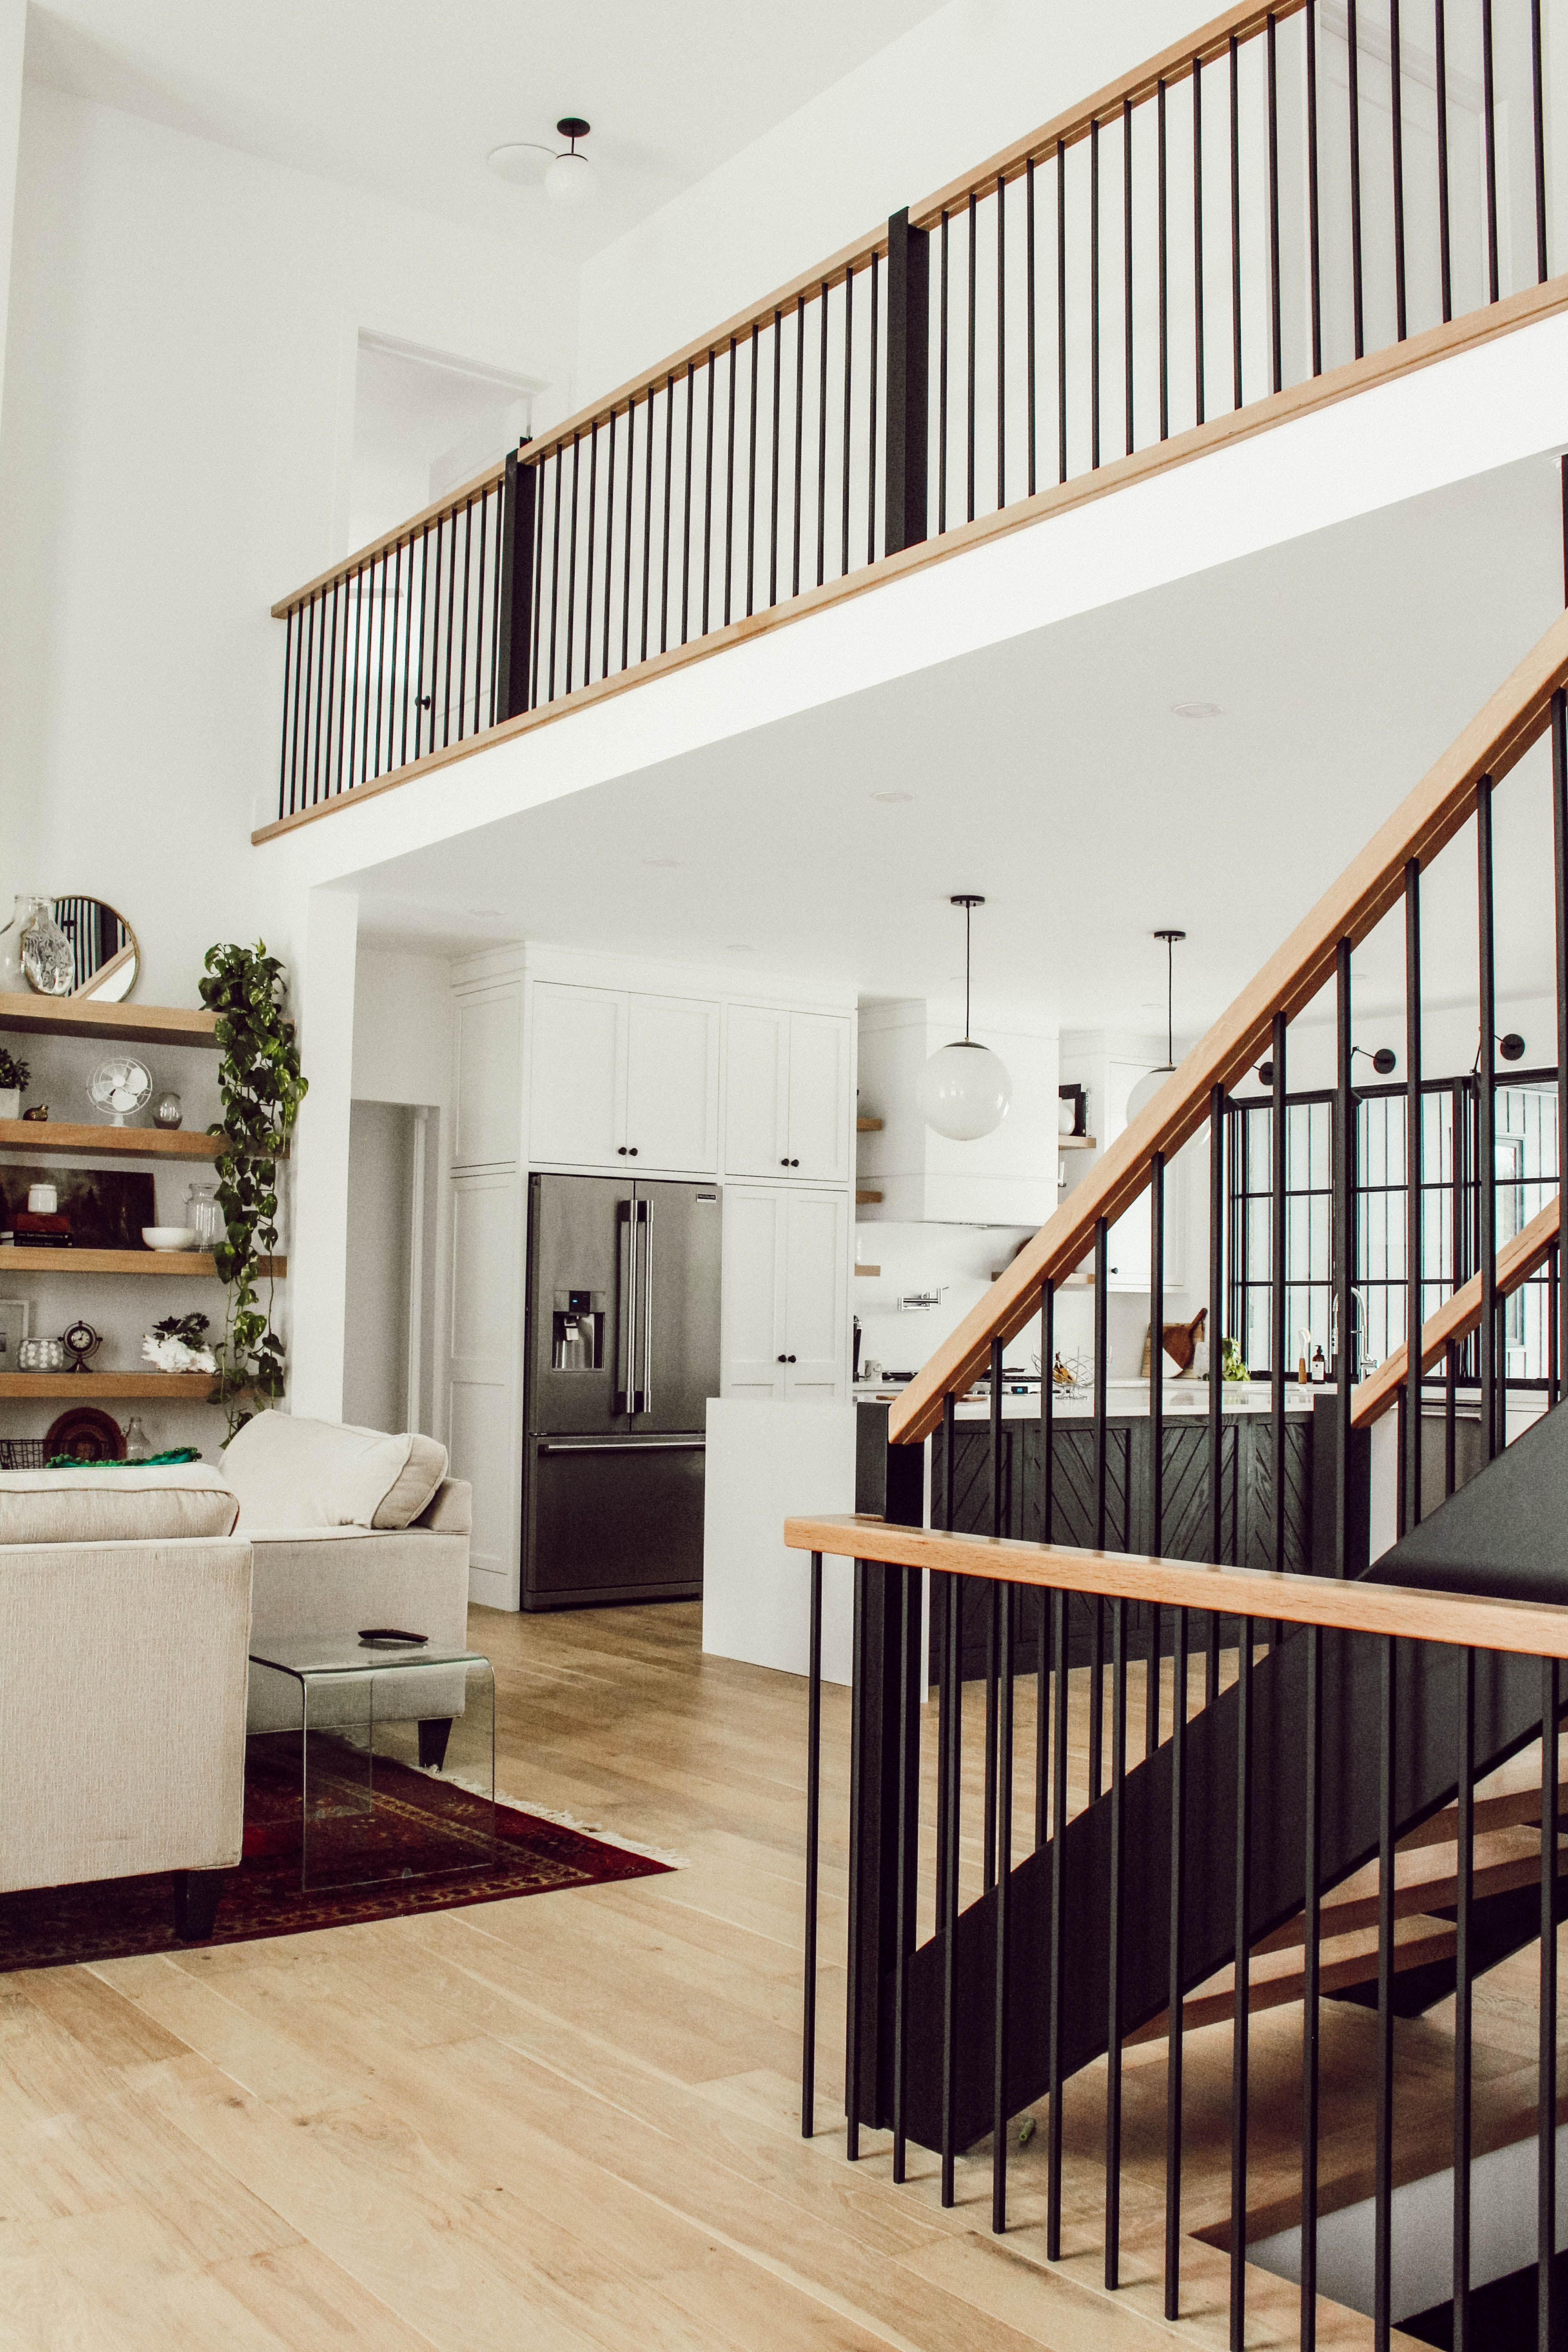 Life In The New House - HOME&LIVING. - #HOMELIVING #house #Life  Life In The New House – HOME&LIVING. – #HOMELIVING #house #Life  #HOMELIVING #House #Life